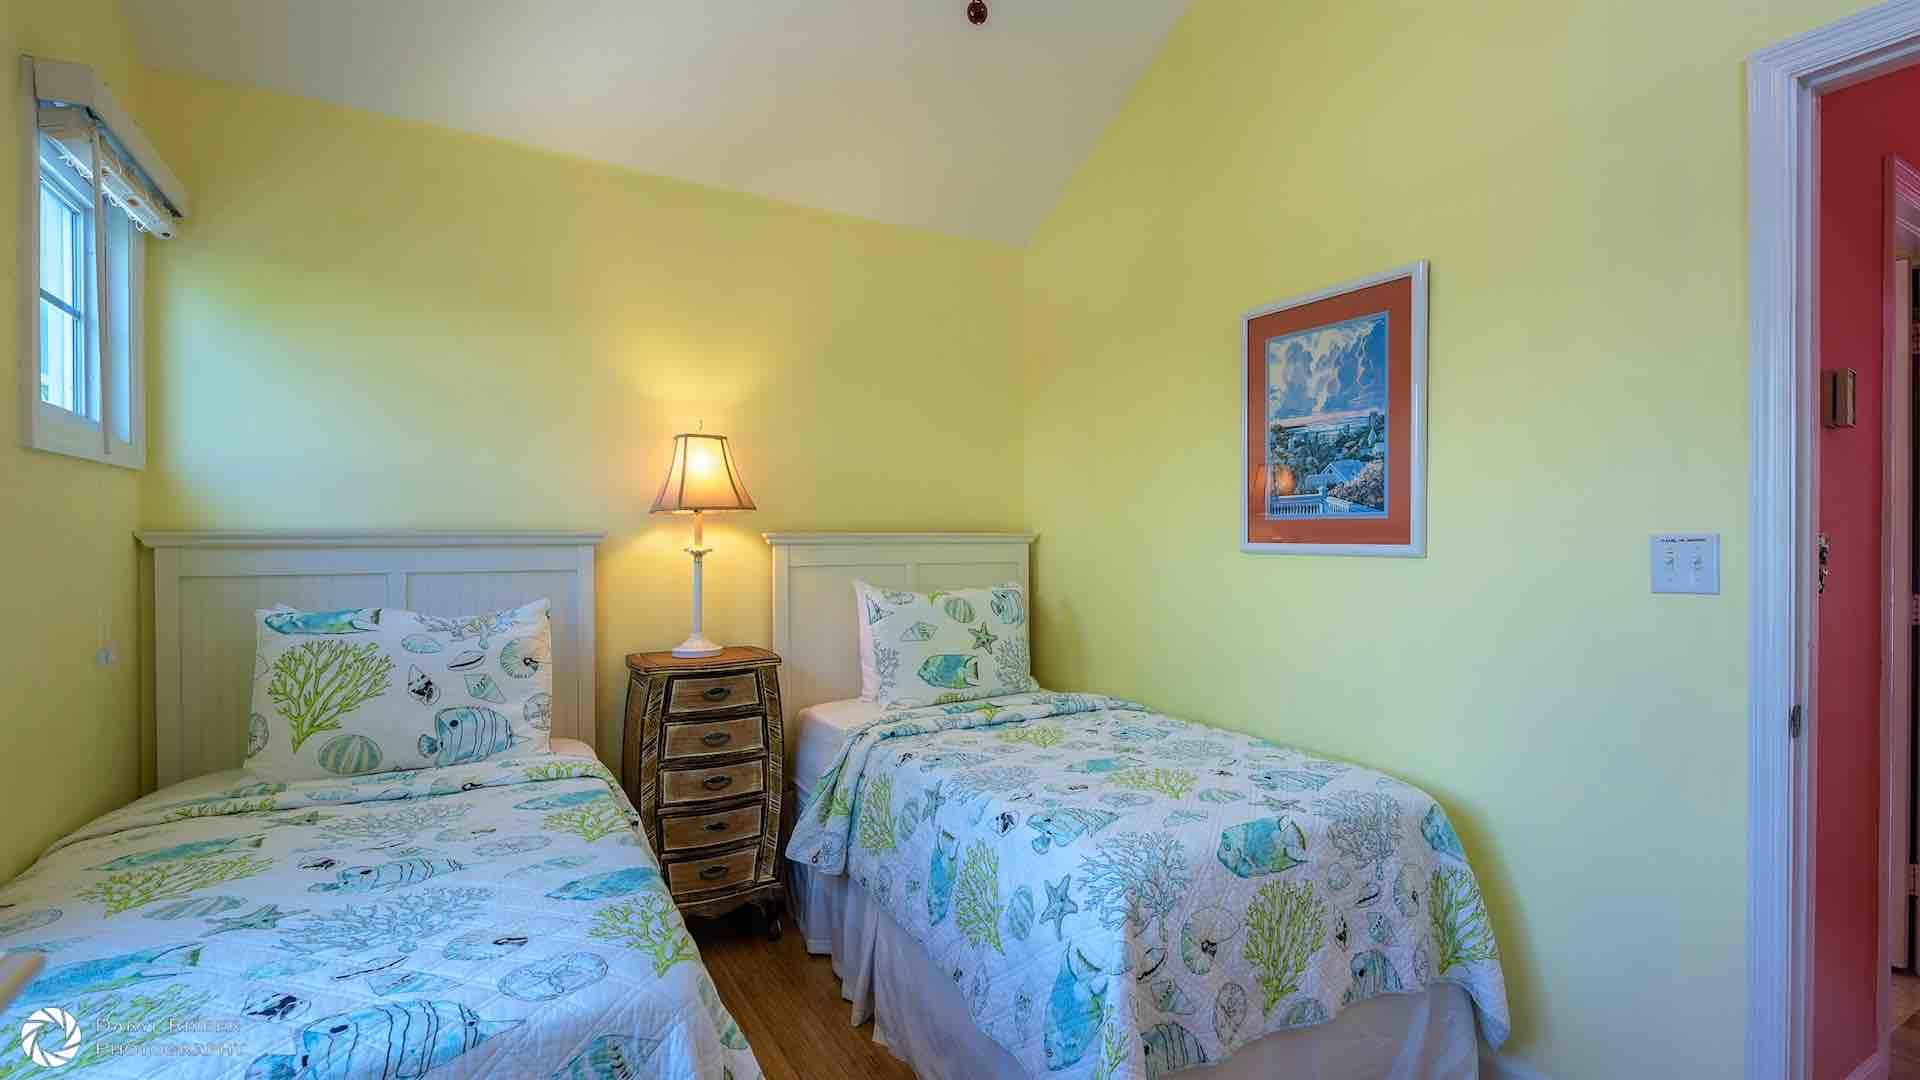 The second bedroom has two twin beds that convert to a King bed on request...